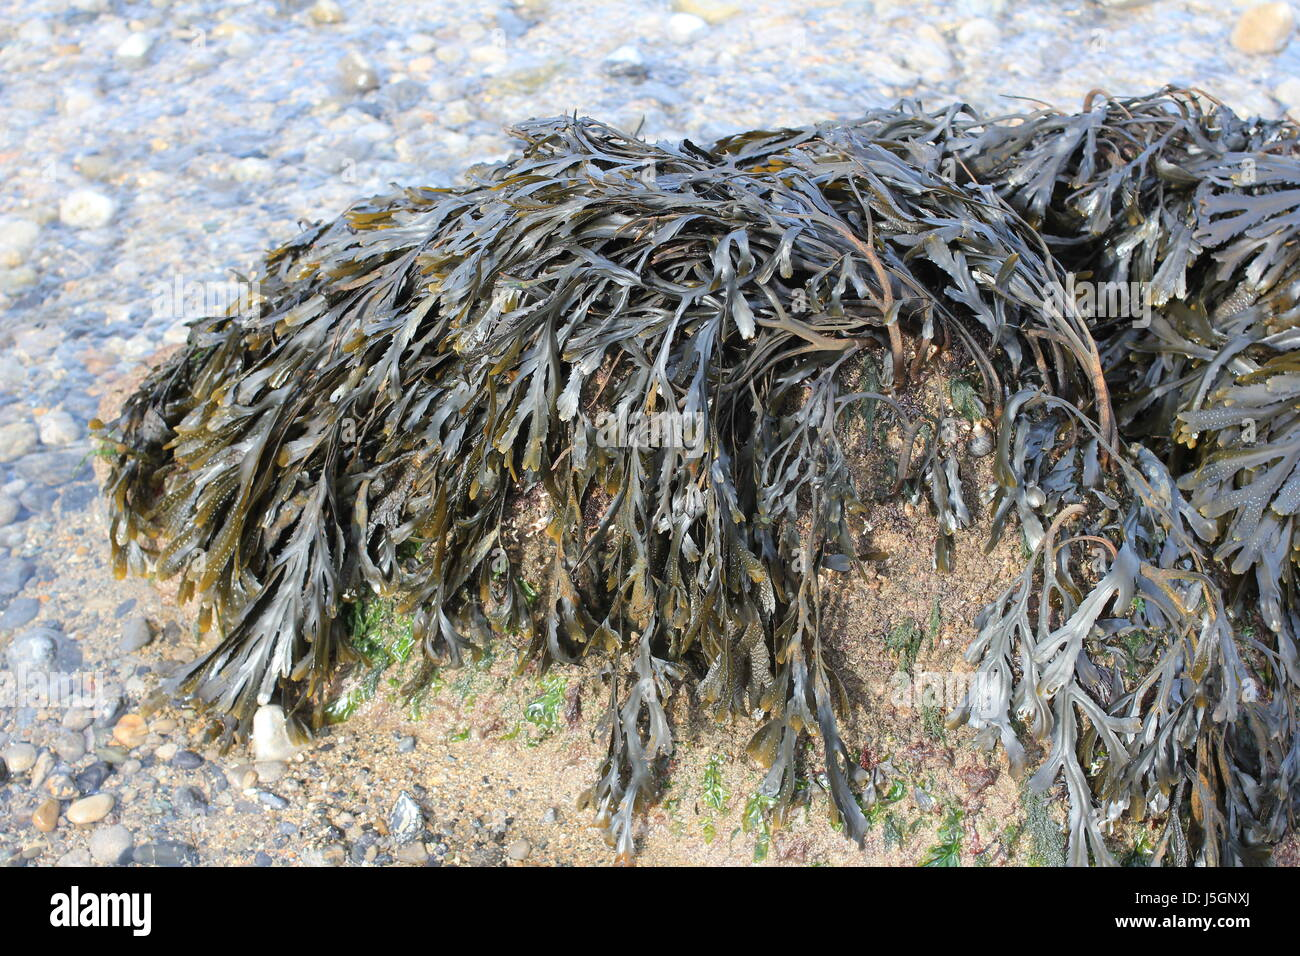 seaweed stranded at high tide. - Stock Image